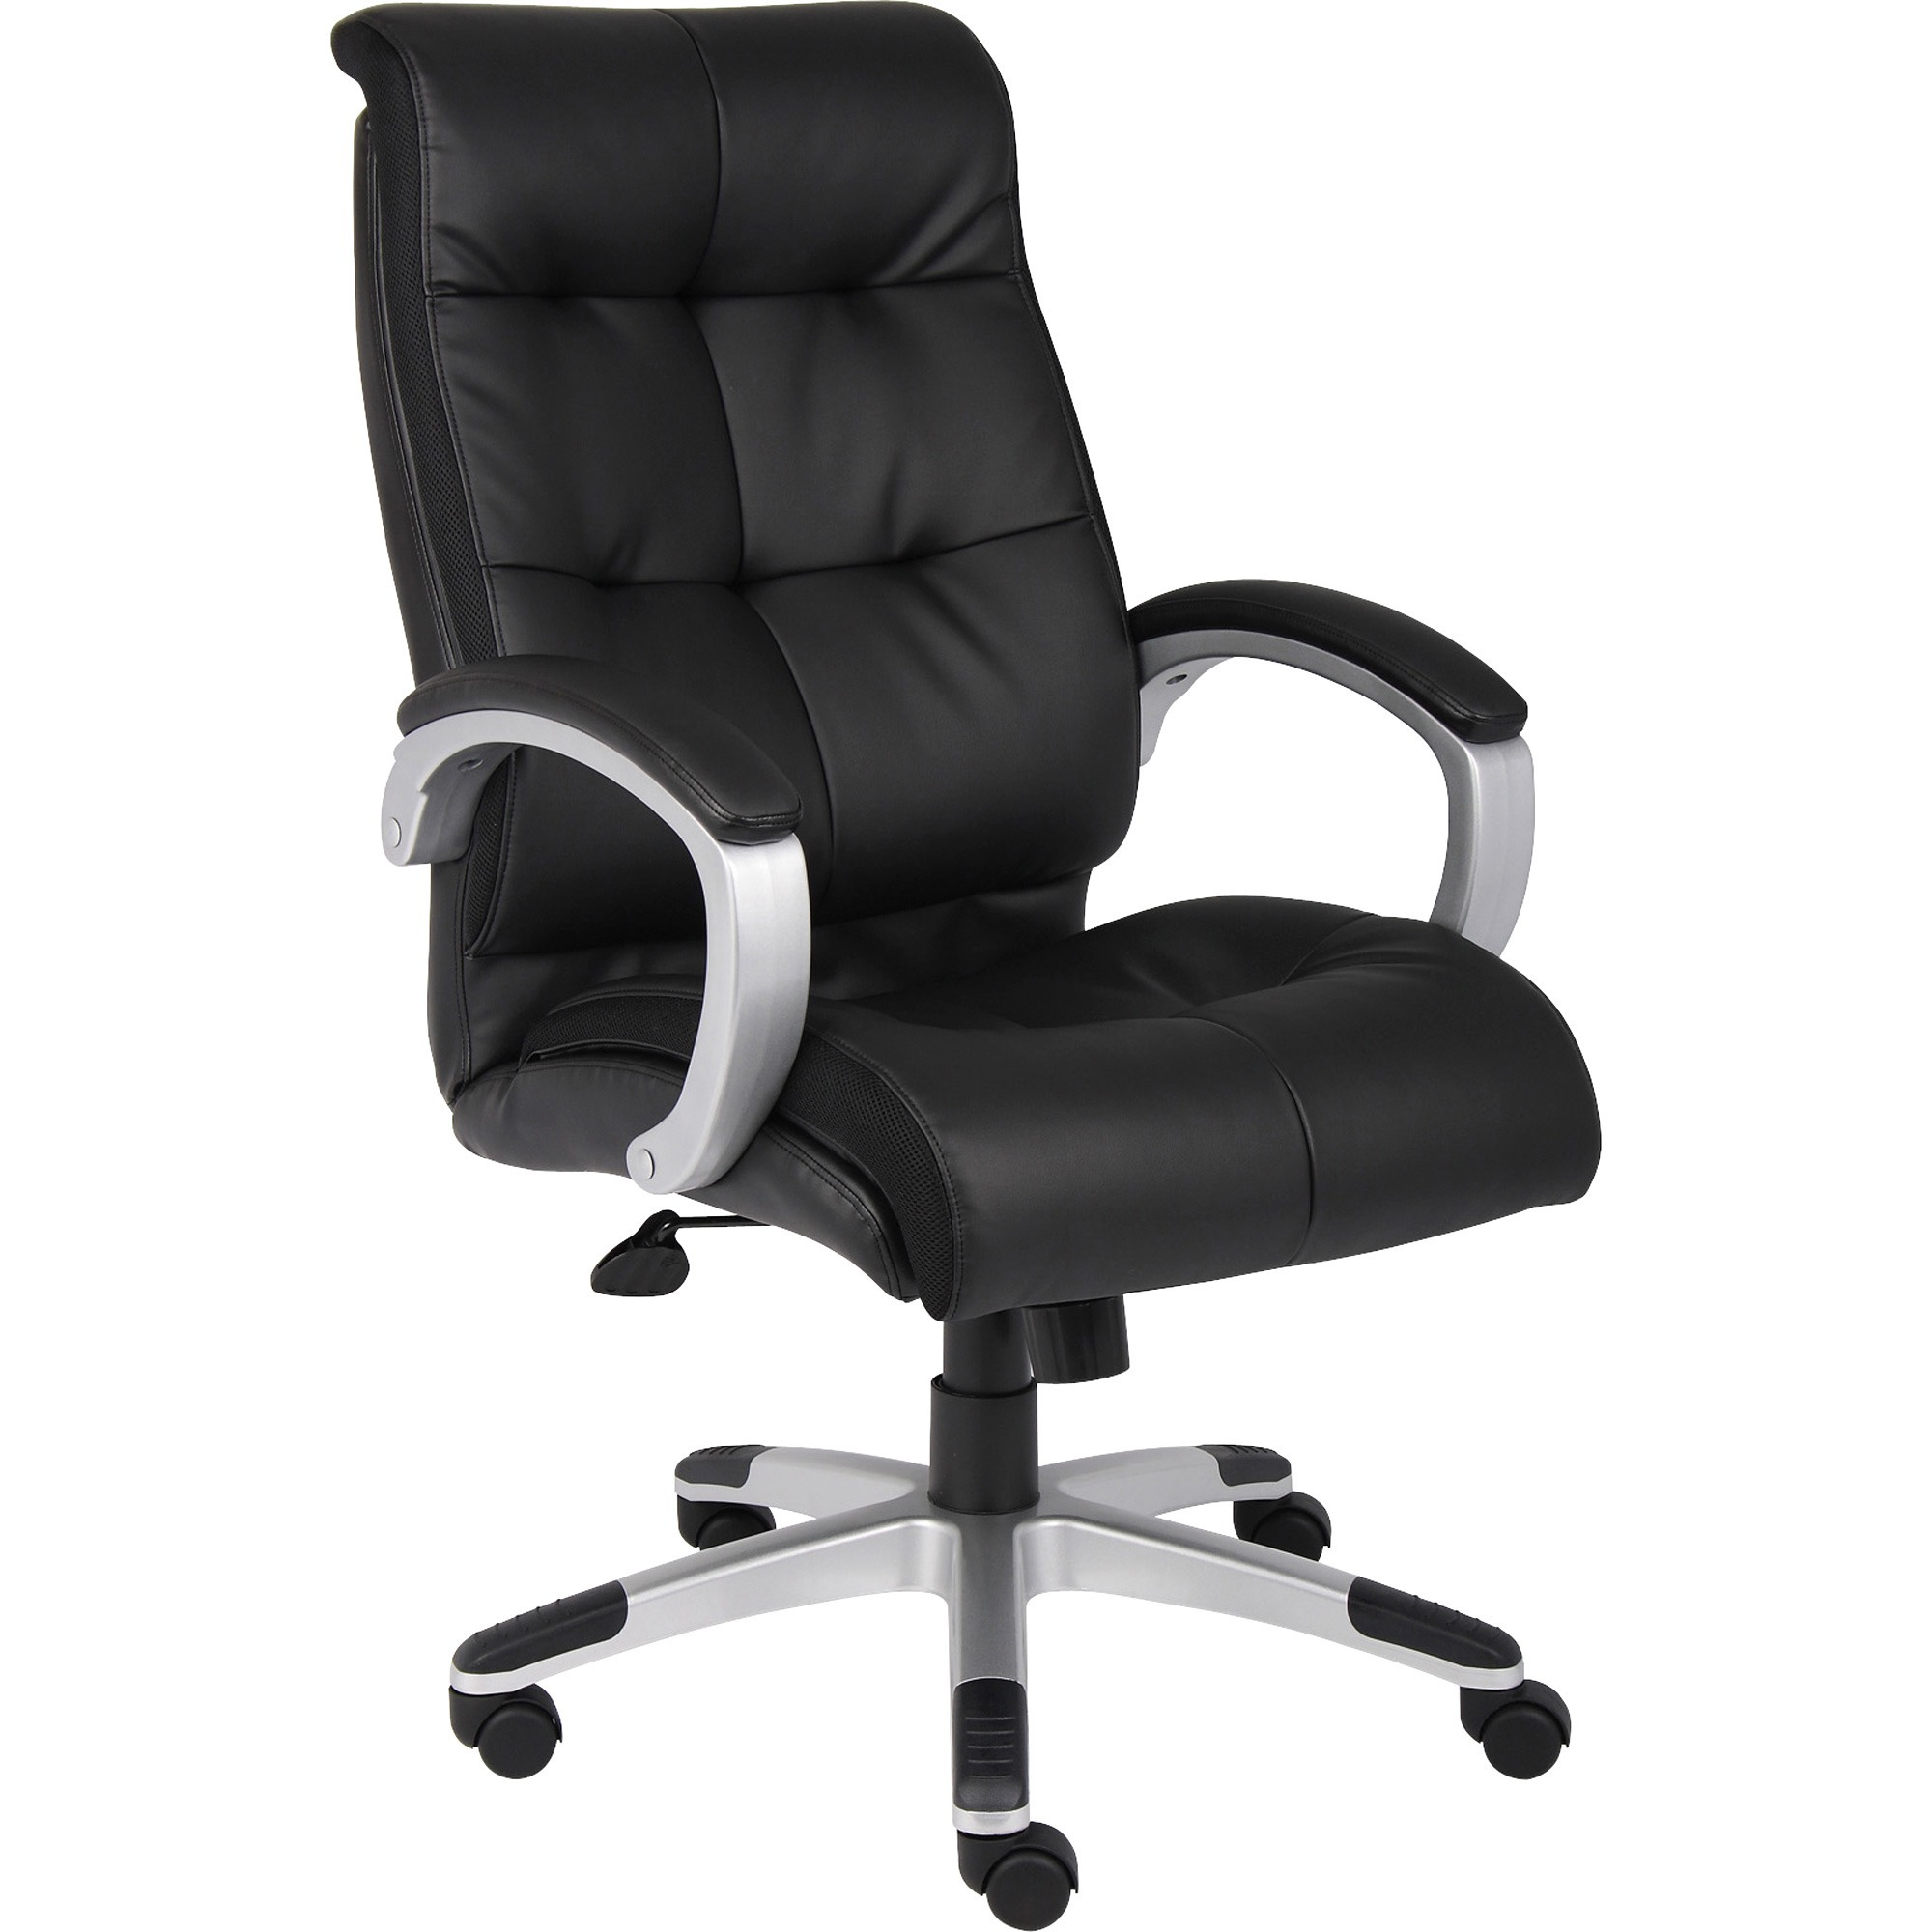 Lorell Executive Chair, Black